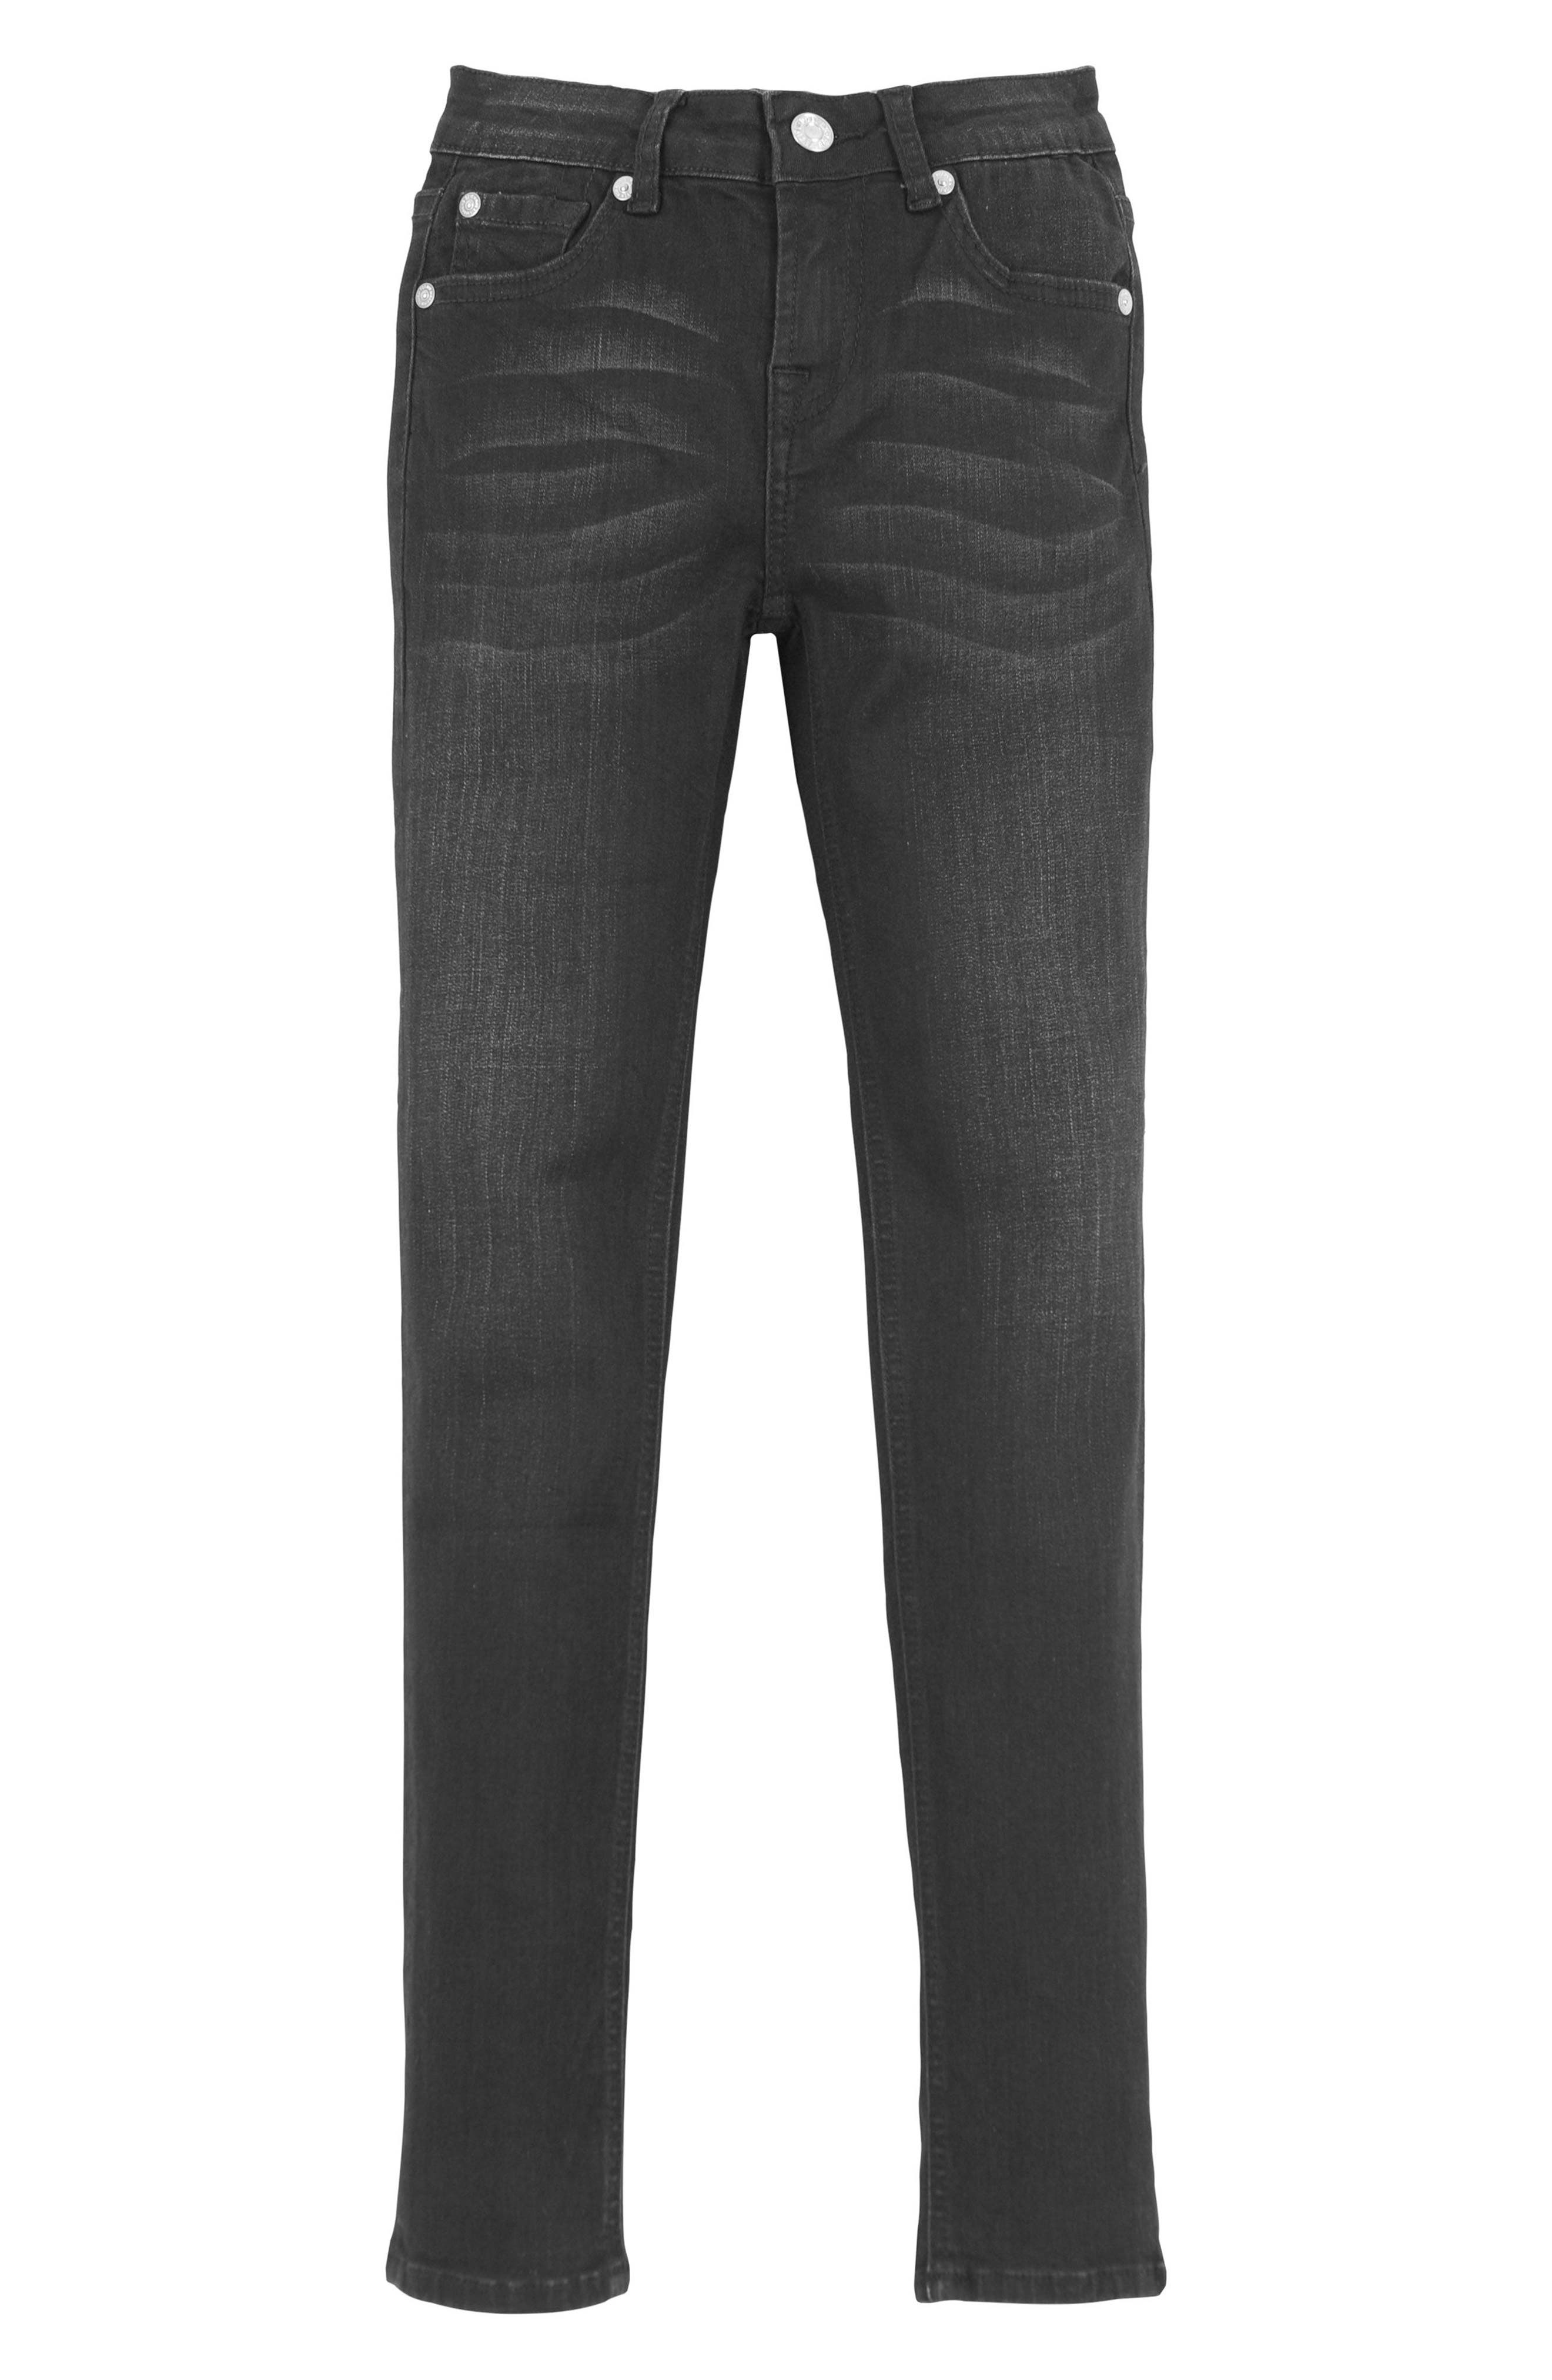 Slimmy Slim Fit Jeans,                             Main thumbnail 1, color,                             Storm Shadow